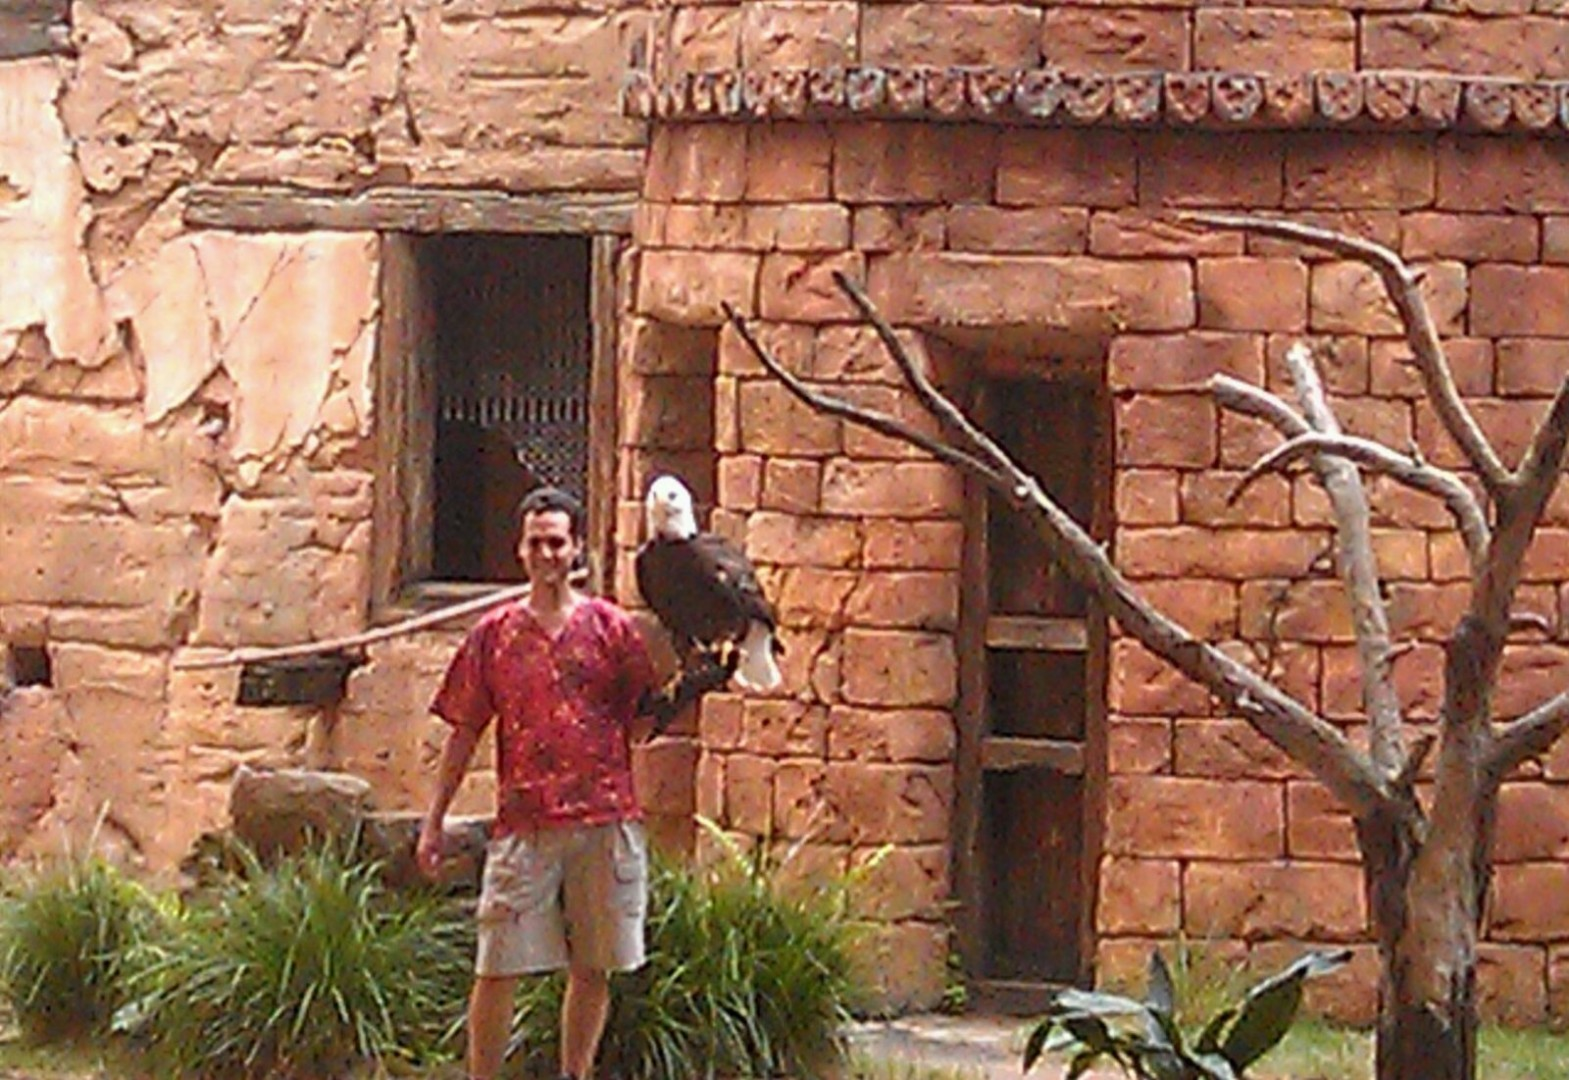 Flights of Wonder – Hope the bald eagle #DAK15